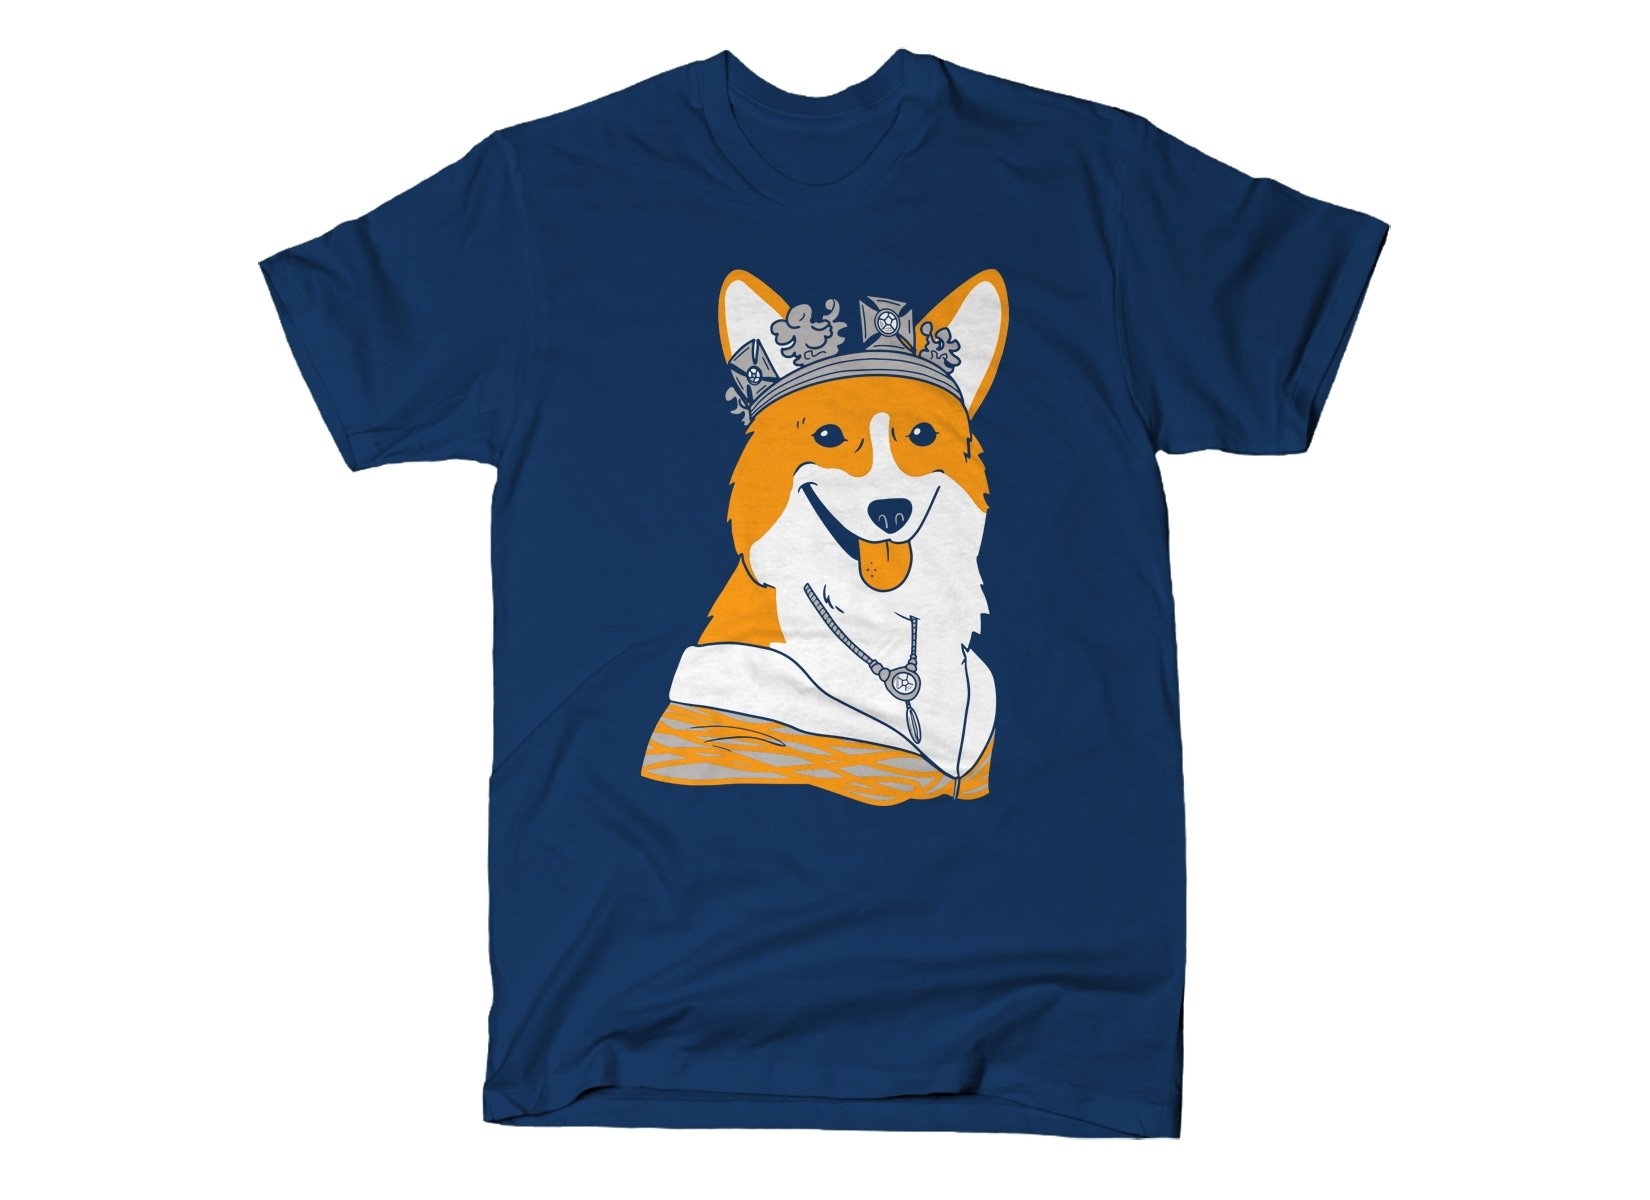 Her Majesty on Mens T-Shirt